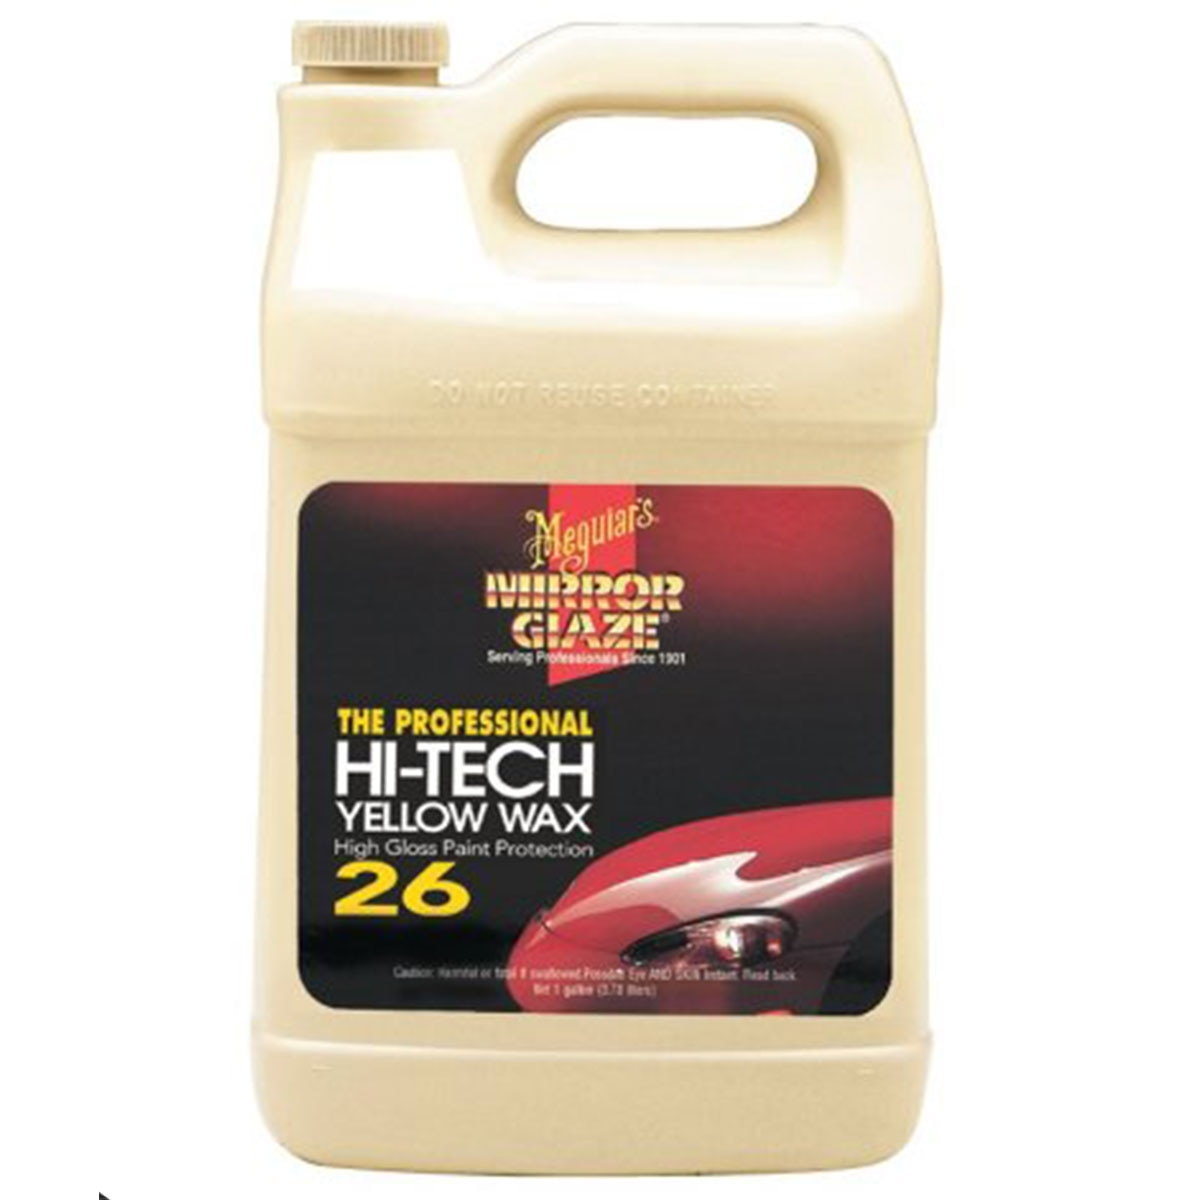 Hi-Tech Yellow Wax Meguiars